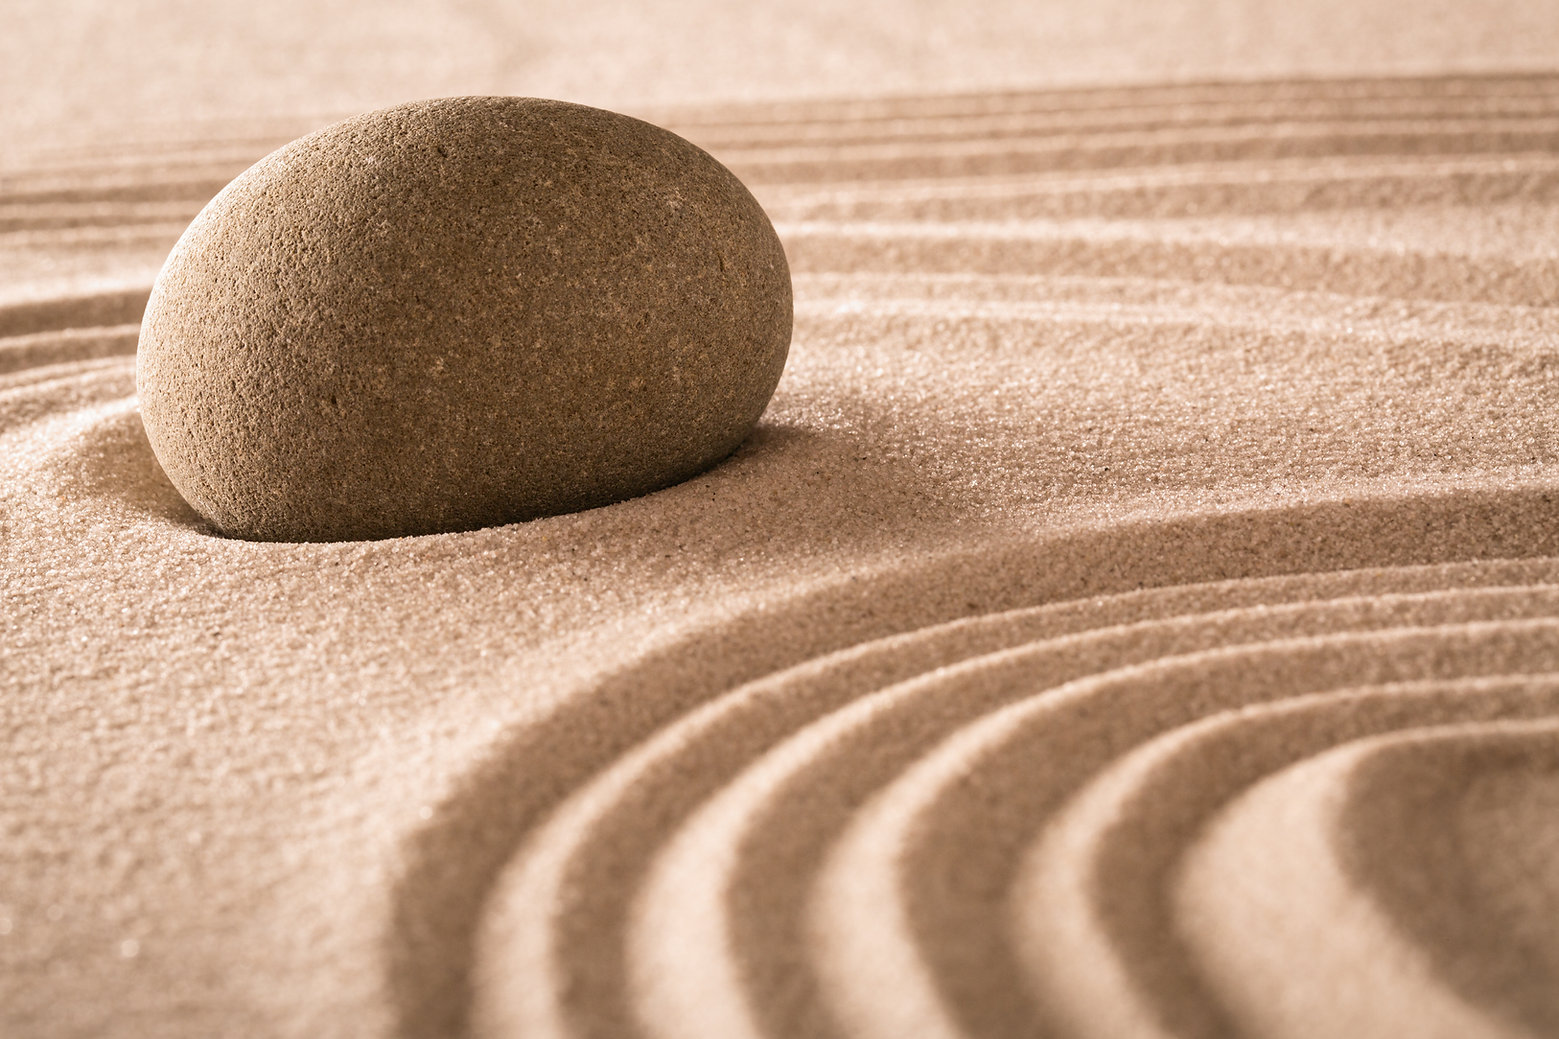 Rock in Sand